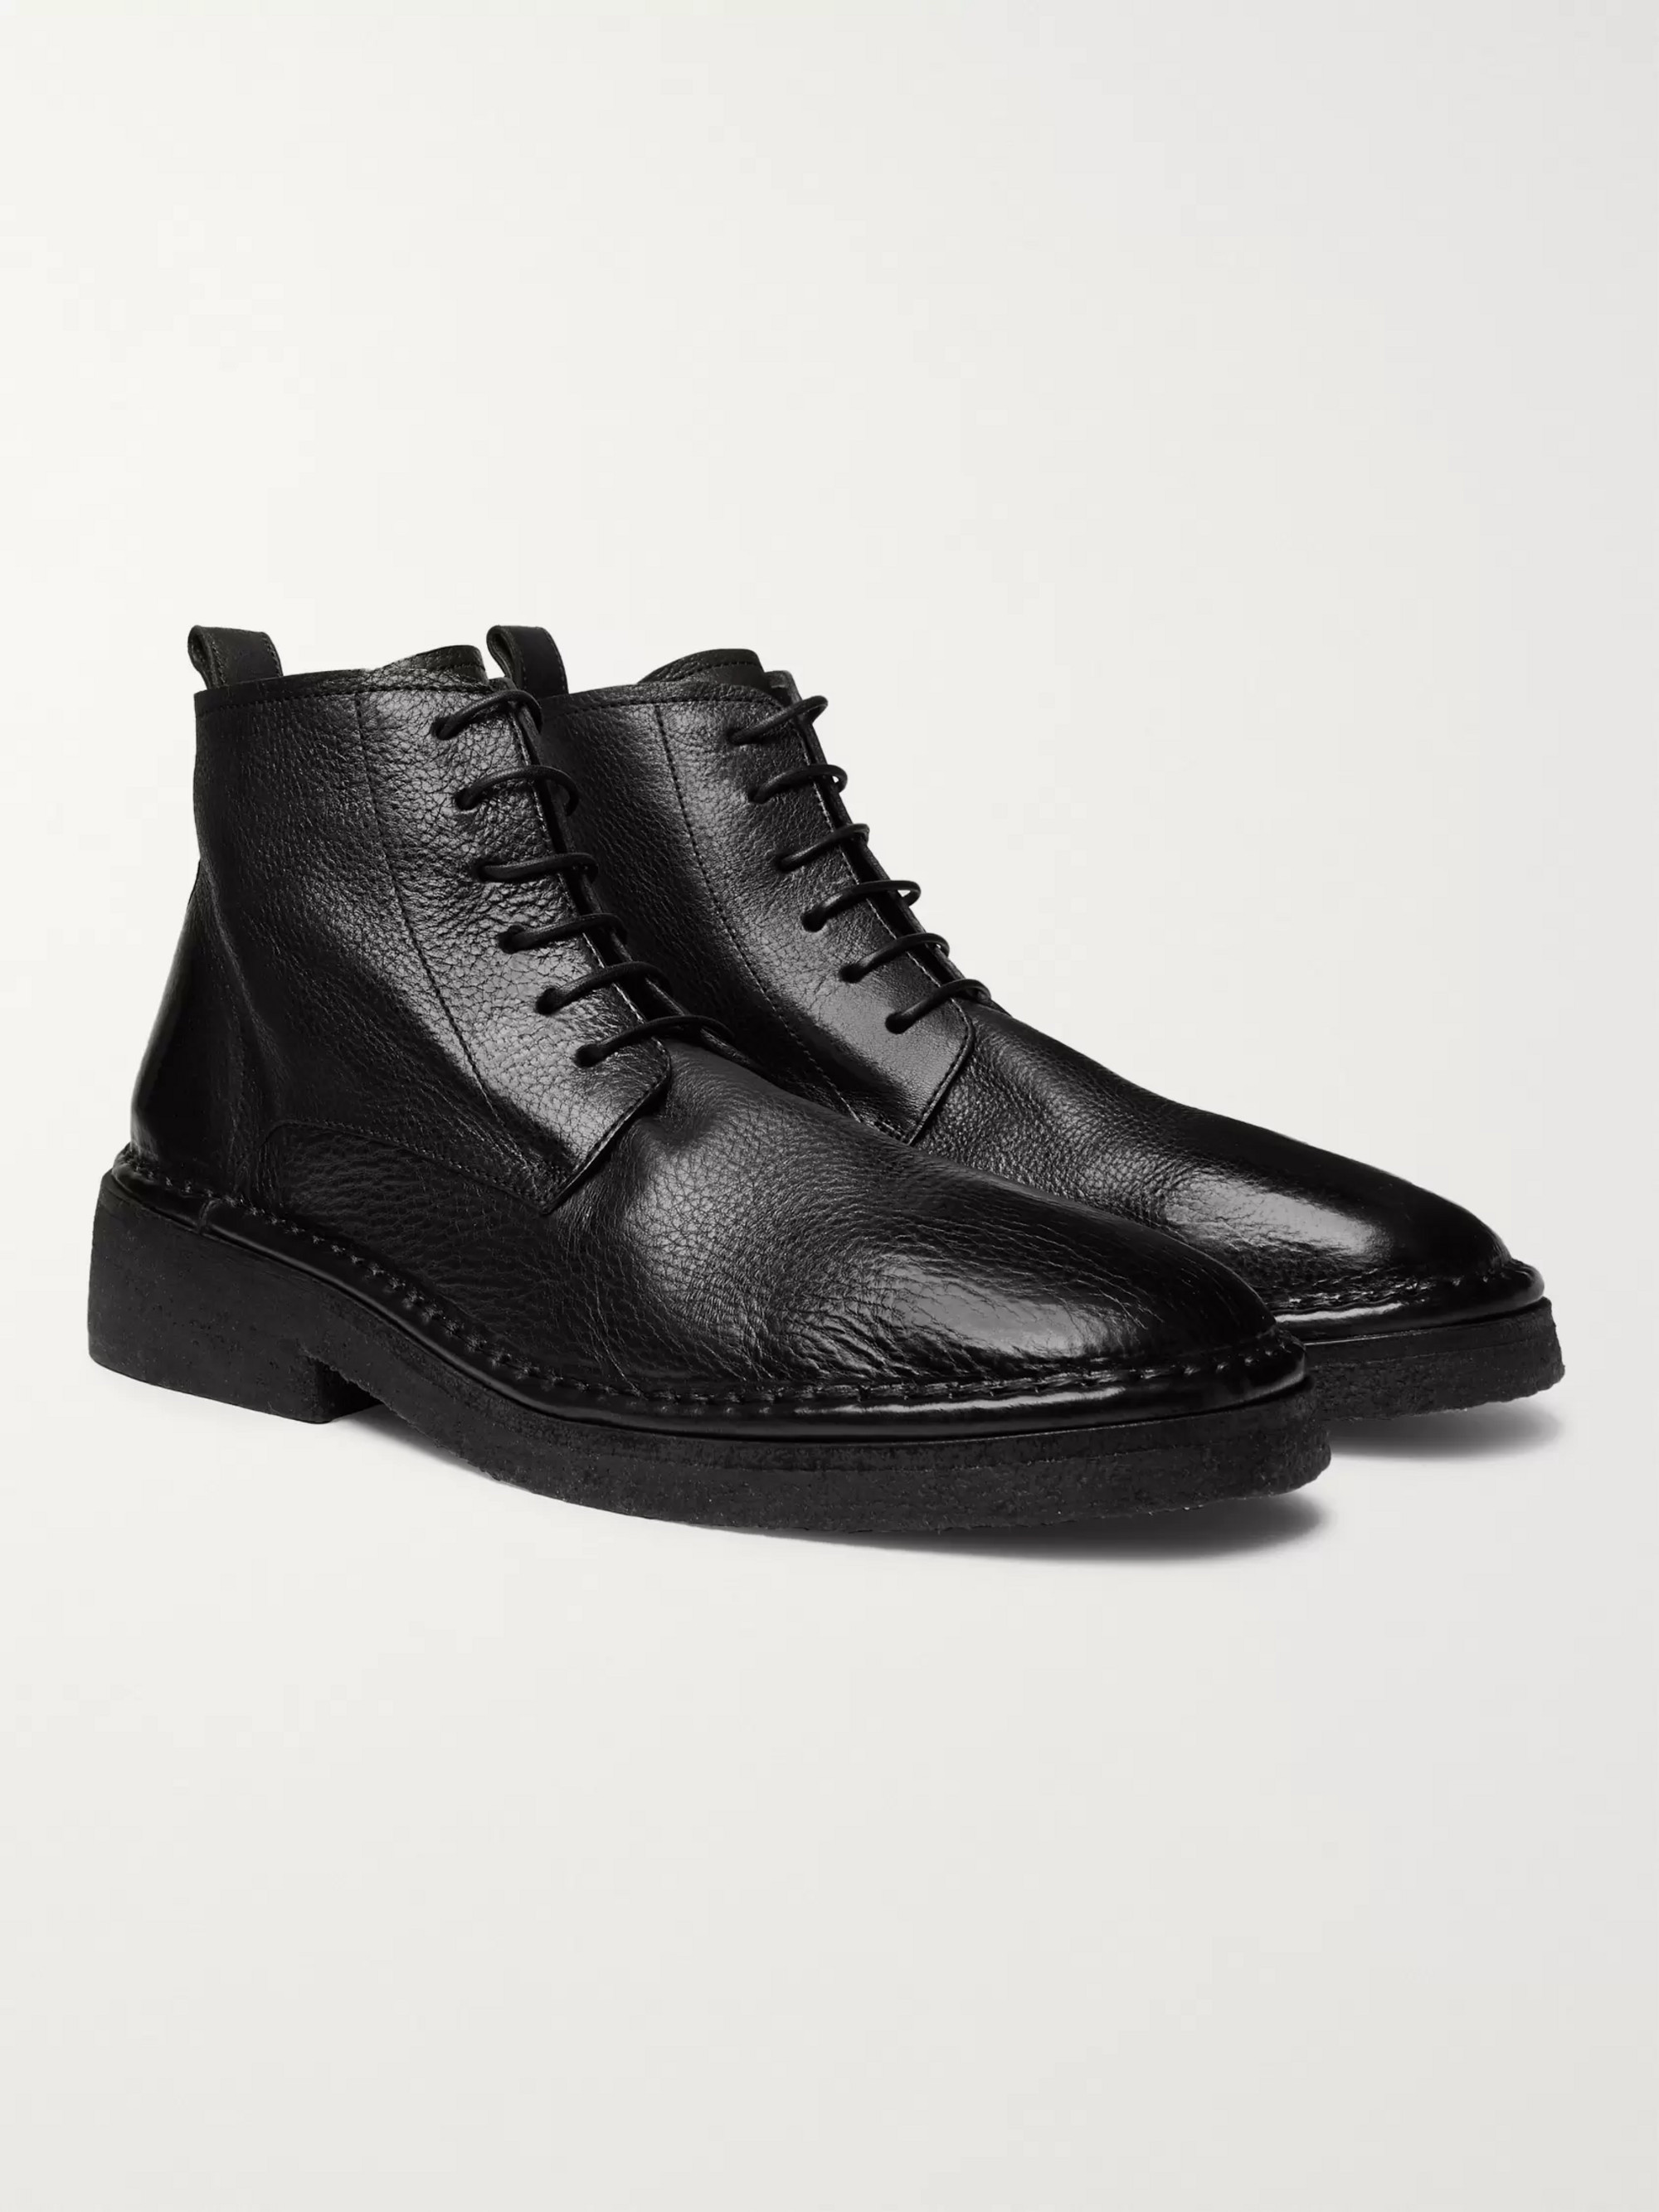 Marsell Full-Grain Leather Boots